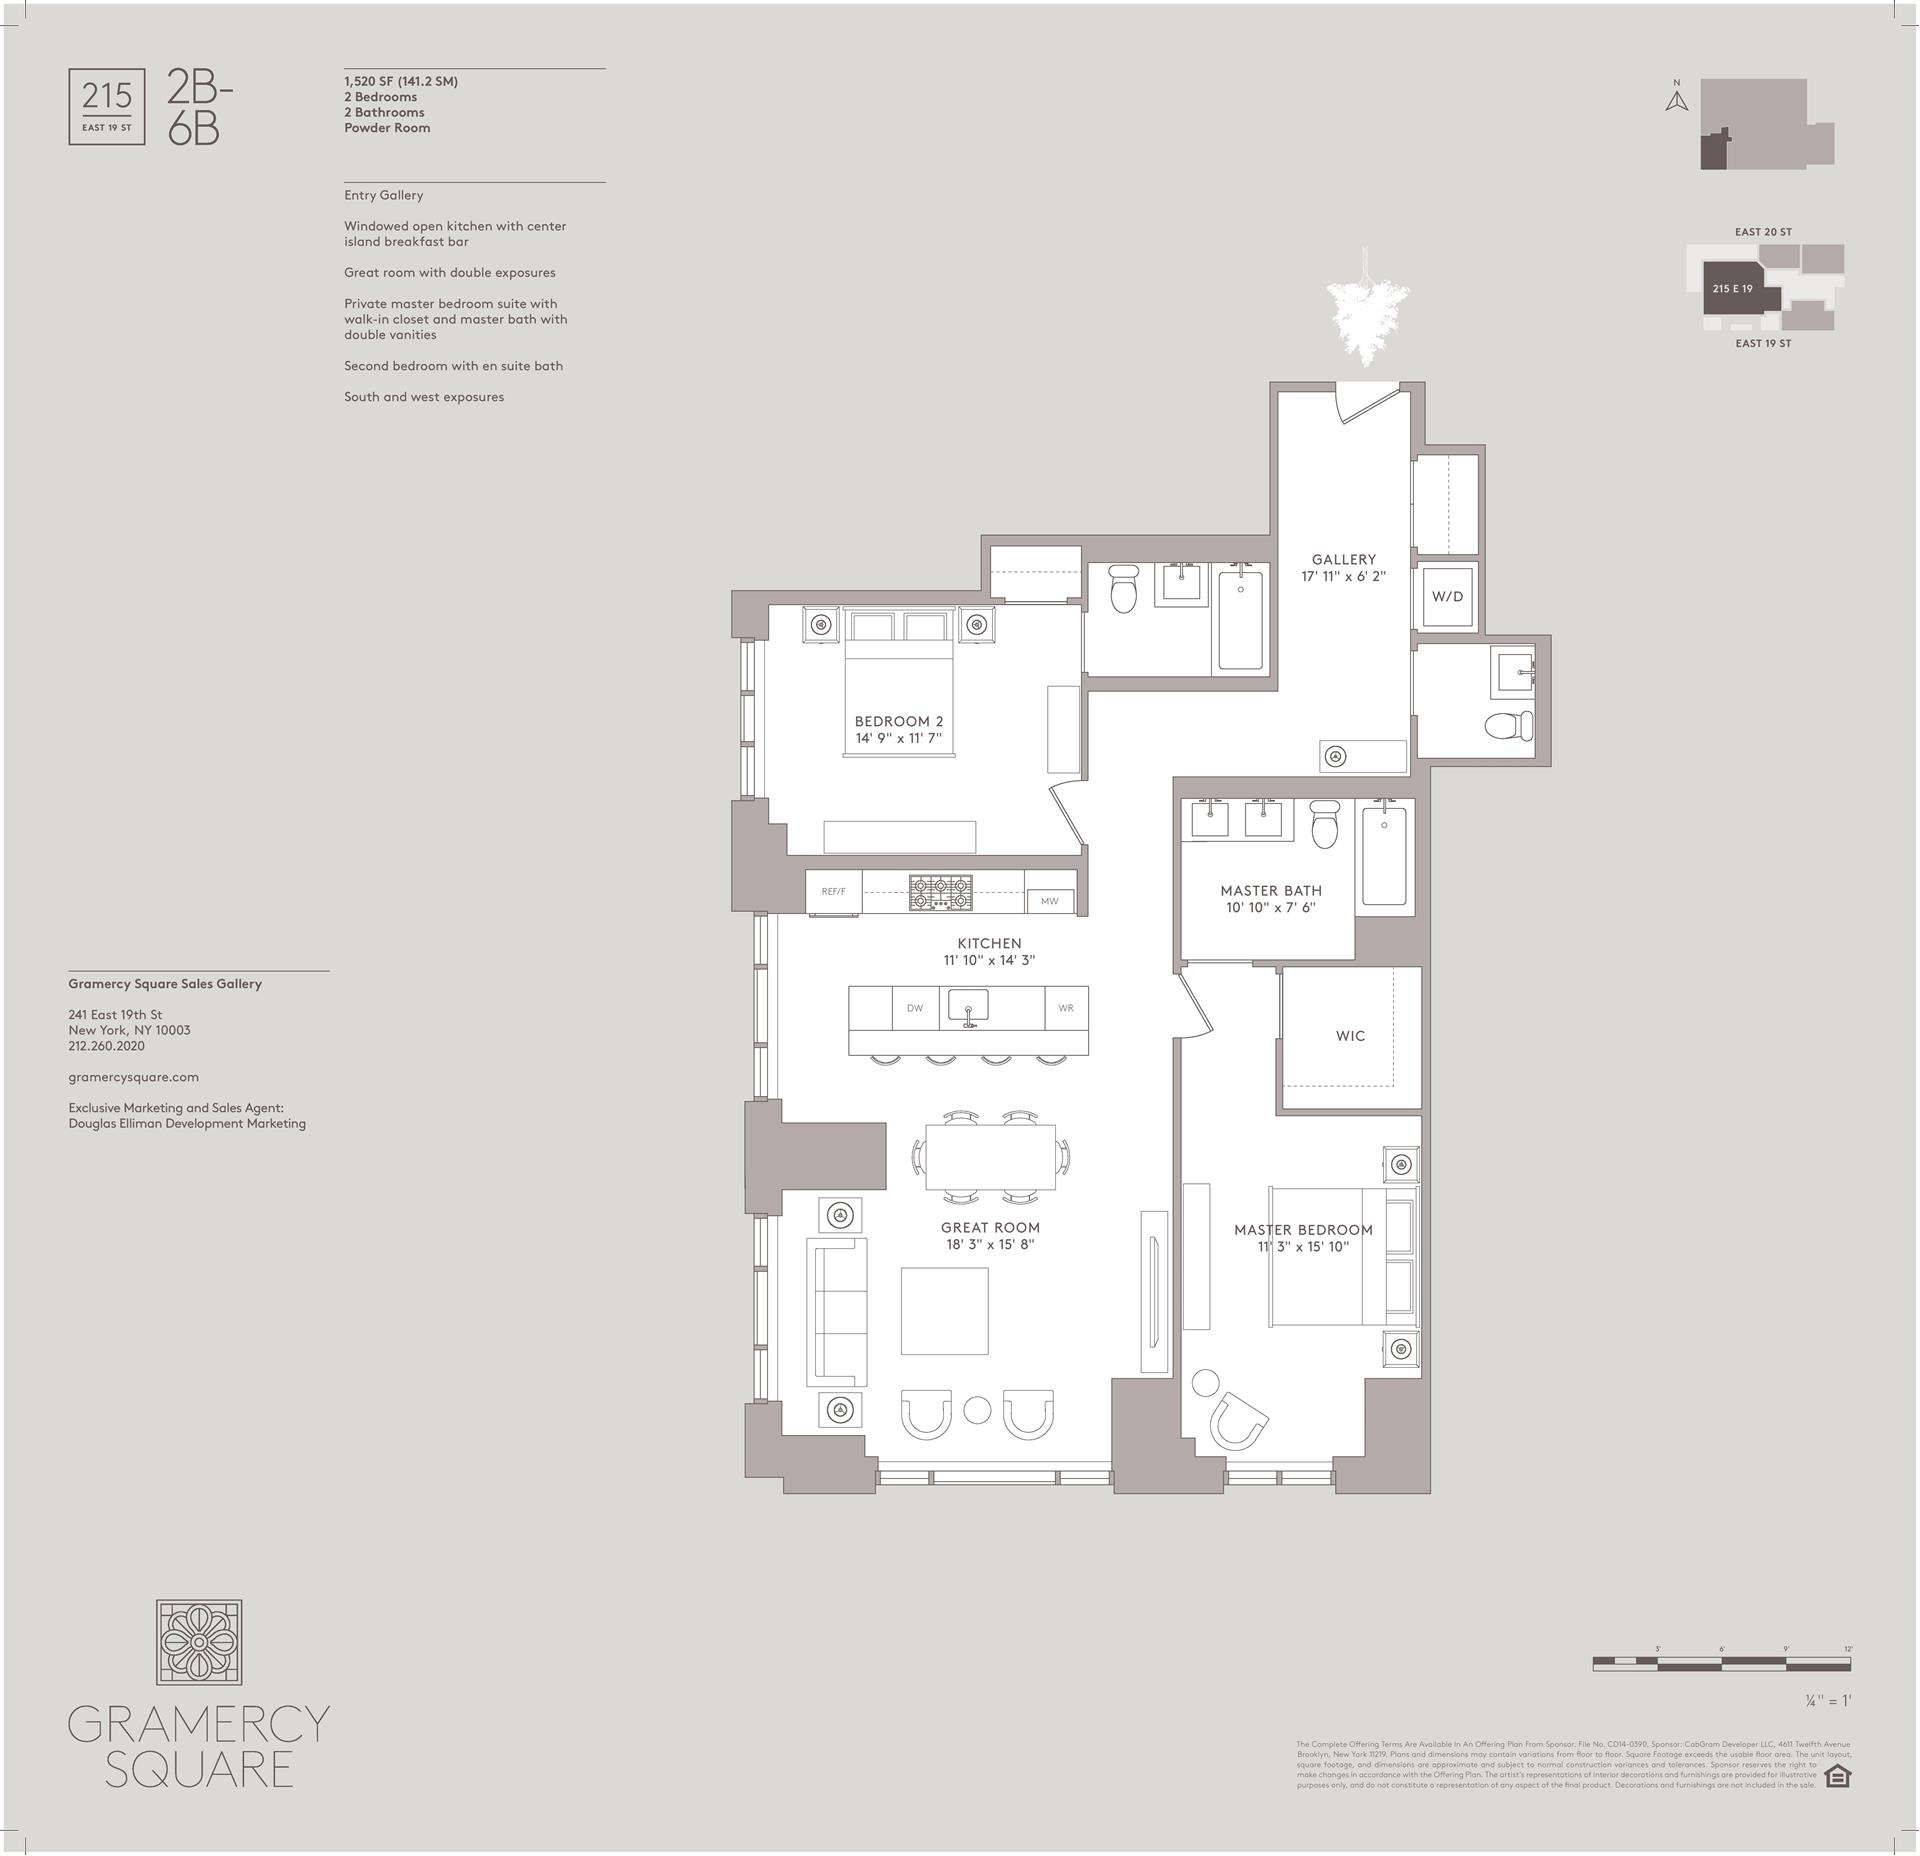 Floor plan of Gramercy Square, 215 East 19th St, 2B - Gramercy - Union Square, New York